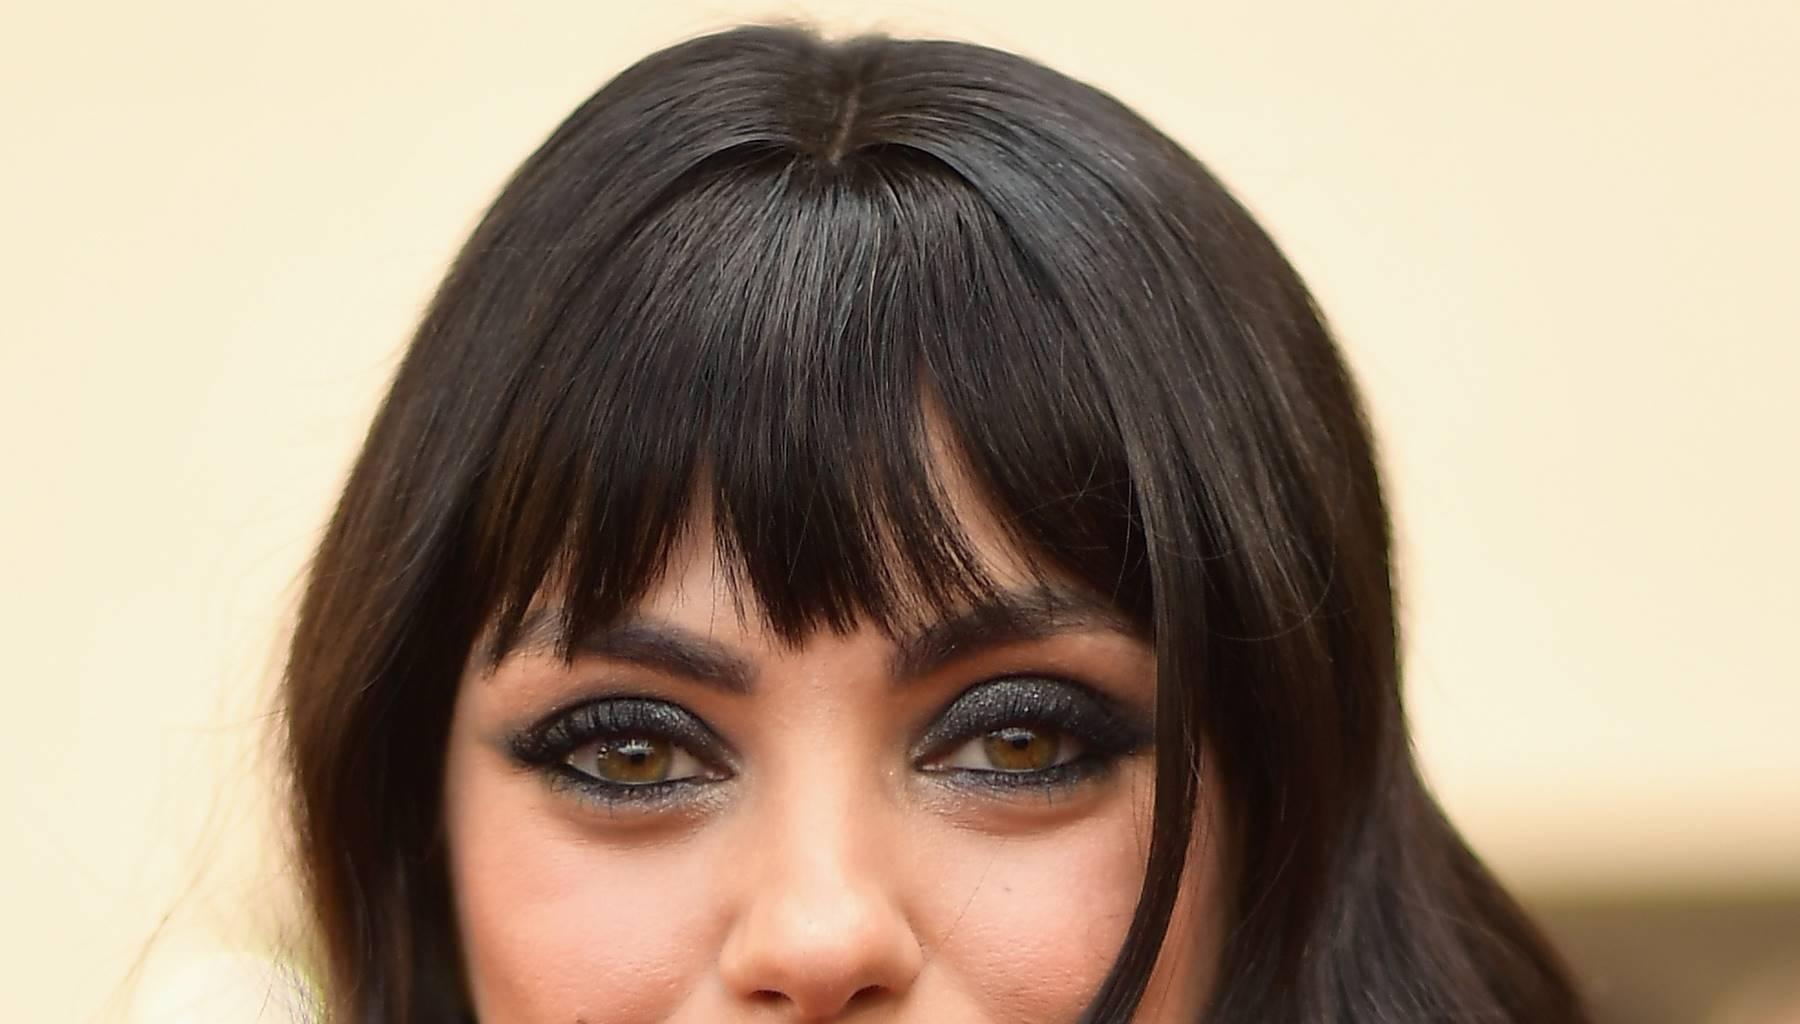 Mila Kunis Spotted In New Photos With Wild Hair Color For This Reason -- Actress Seems Unbothered By The Demi Moore Revelations About Husband Ashton Kutcher